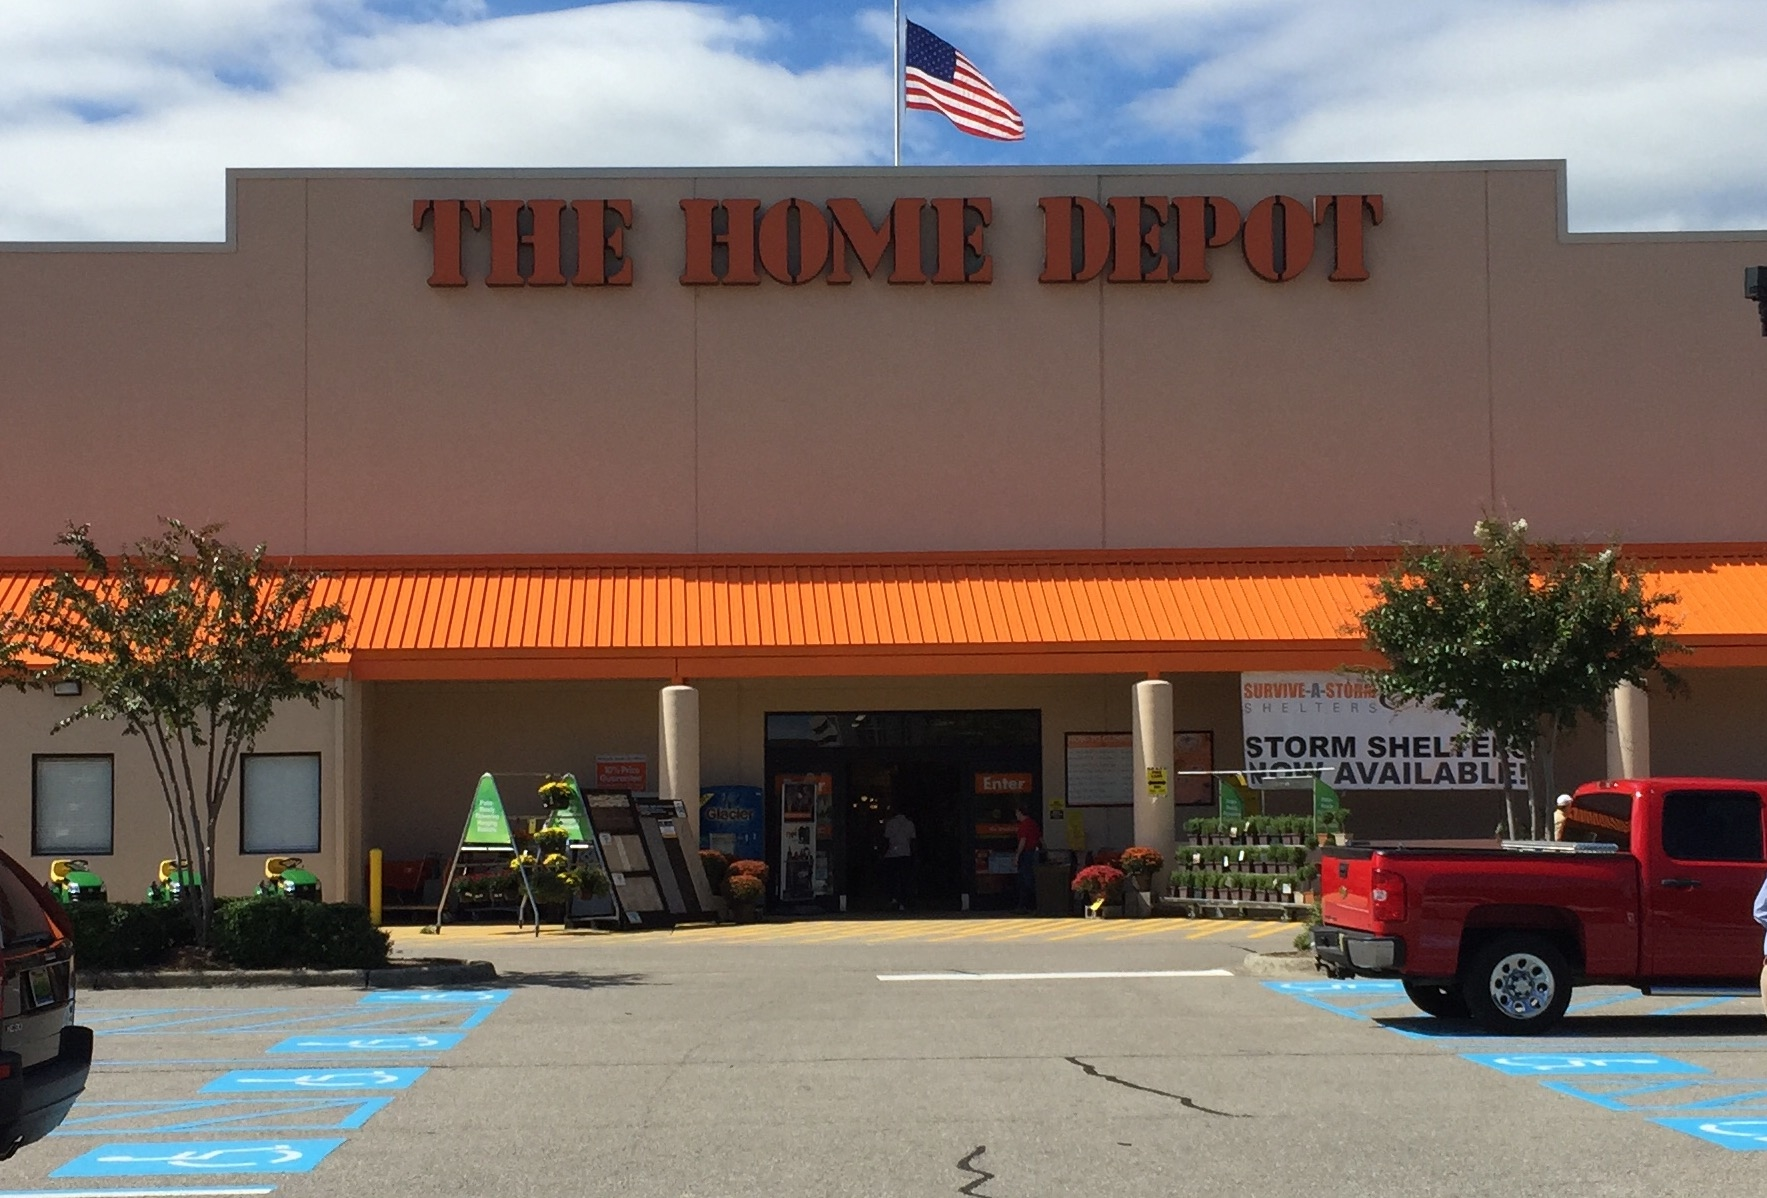 The home depot in hoover al whitepages